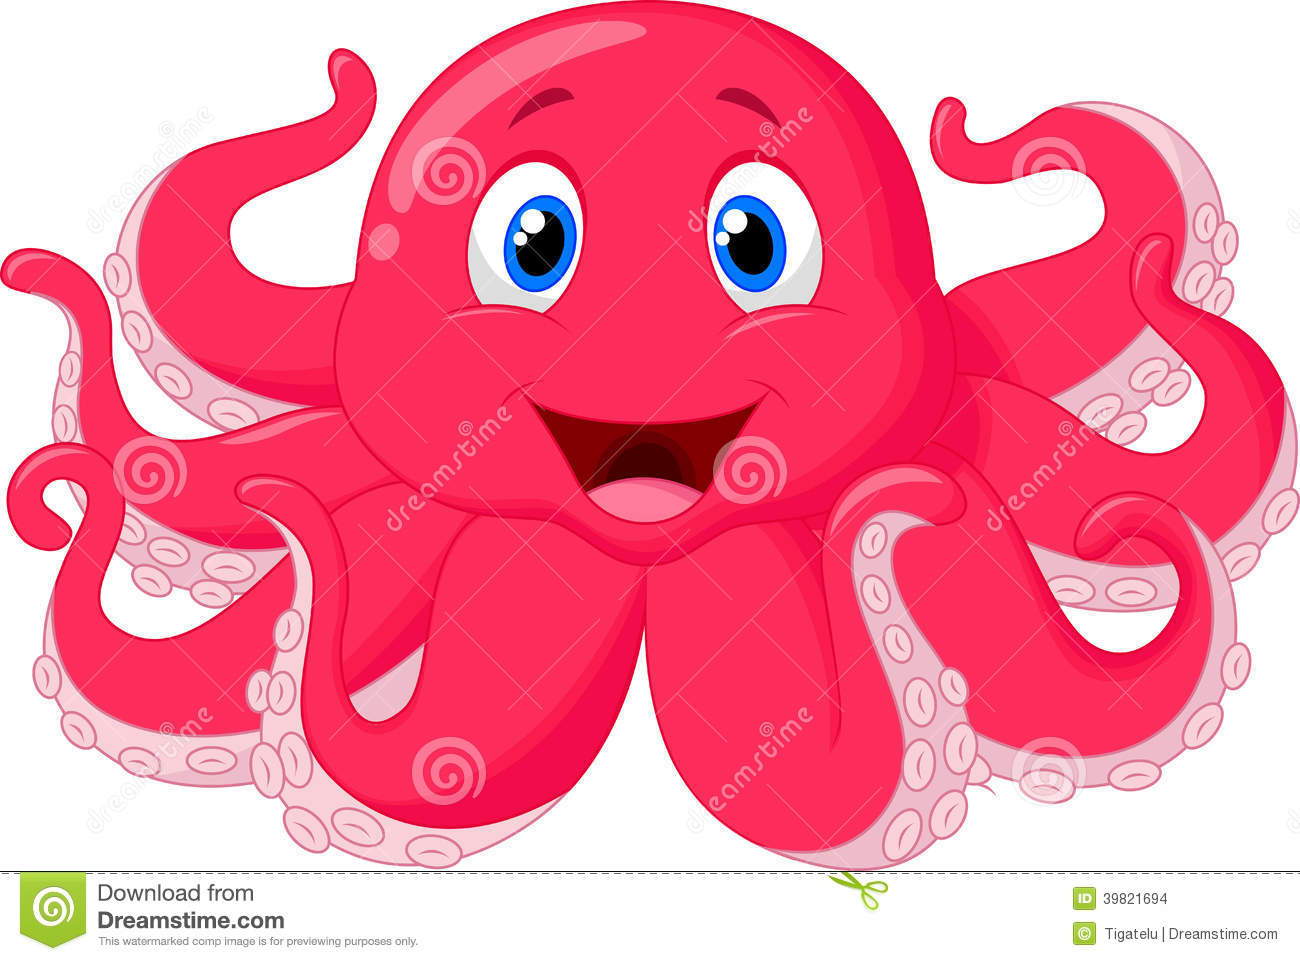 Pics for animated baby octopus for Baby octopus cartoon